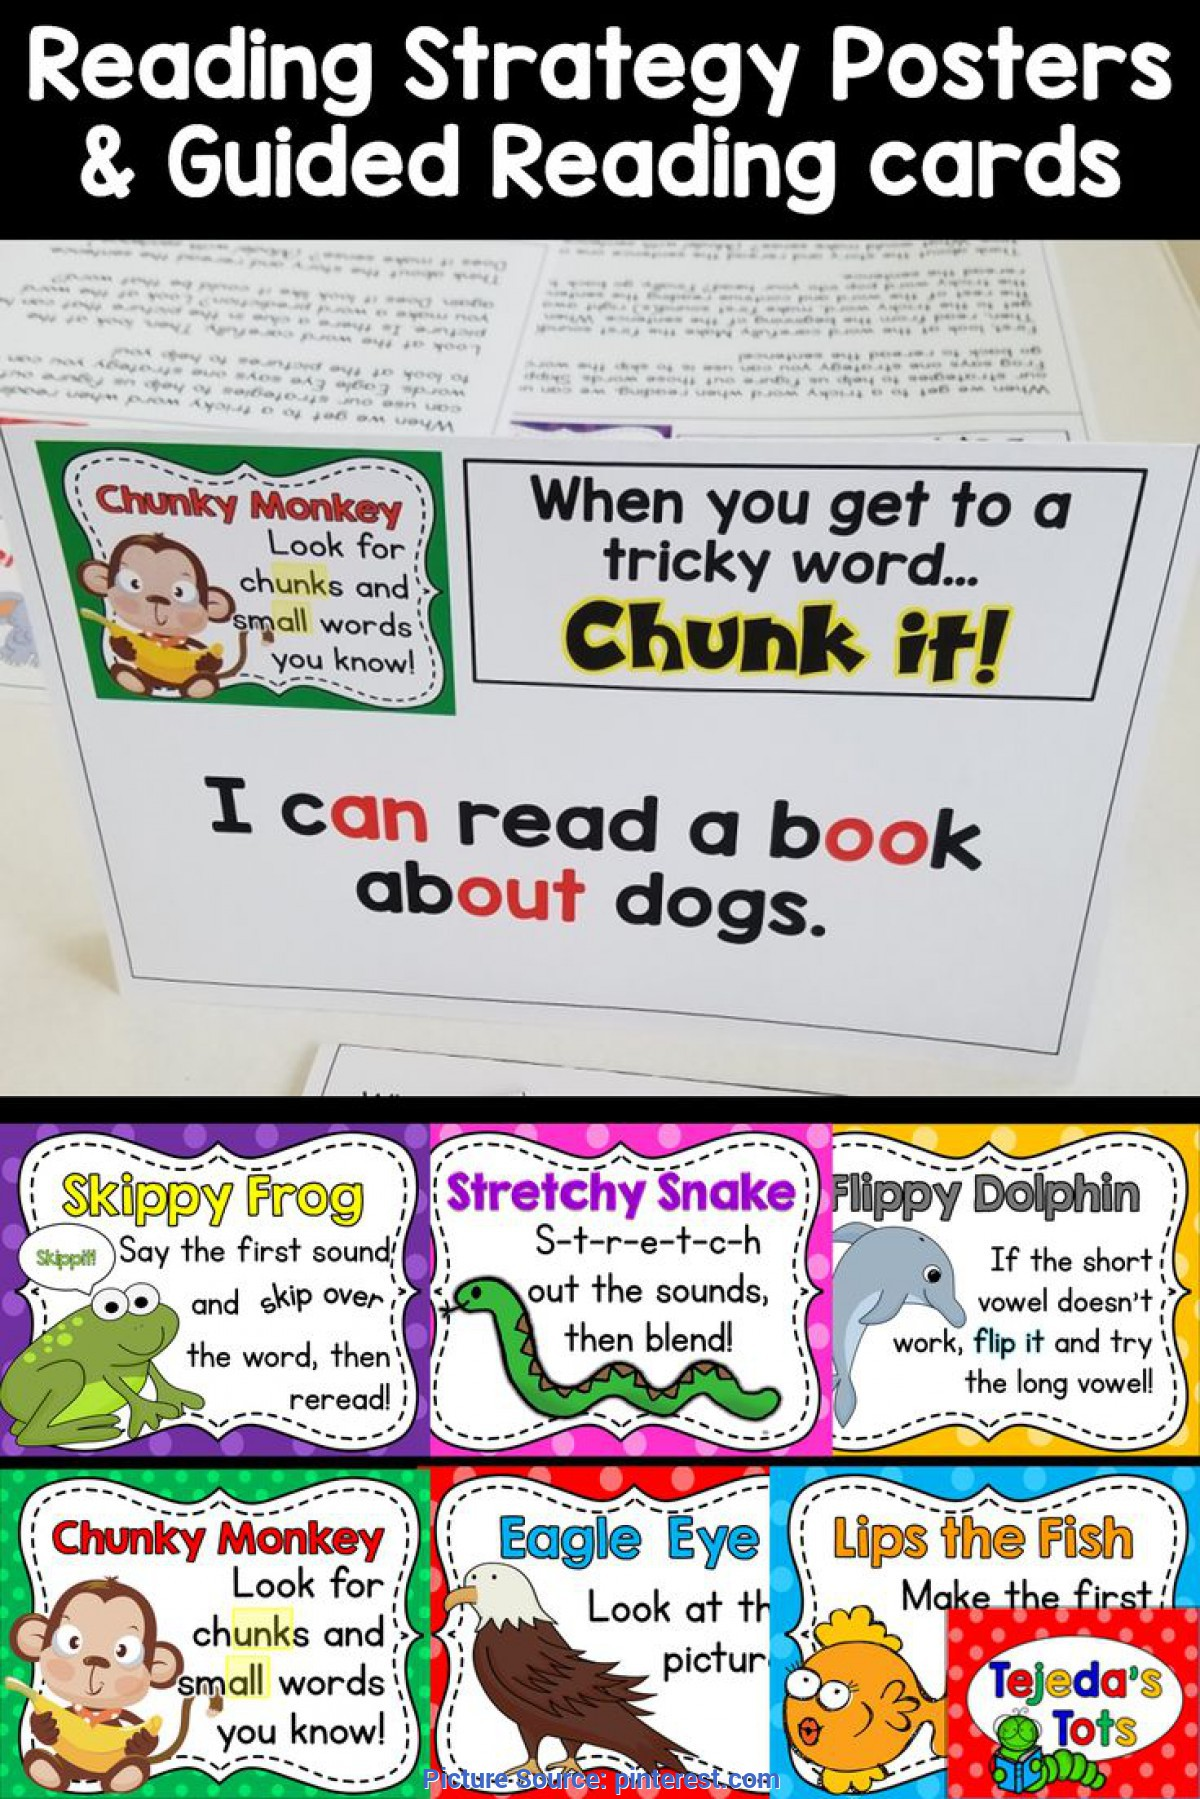 Excellent Community Helpers Crafts For Toddlers Mail Bag Craft And